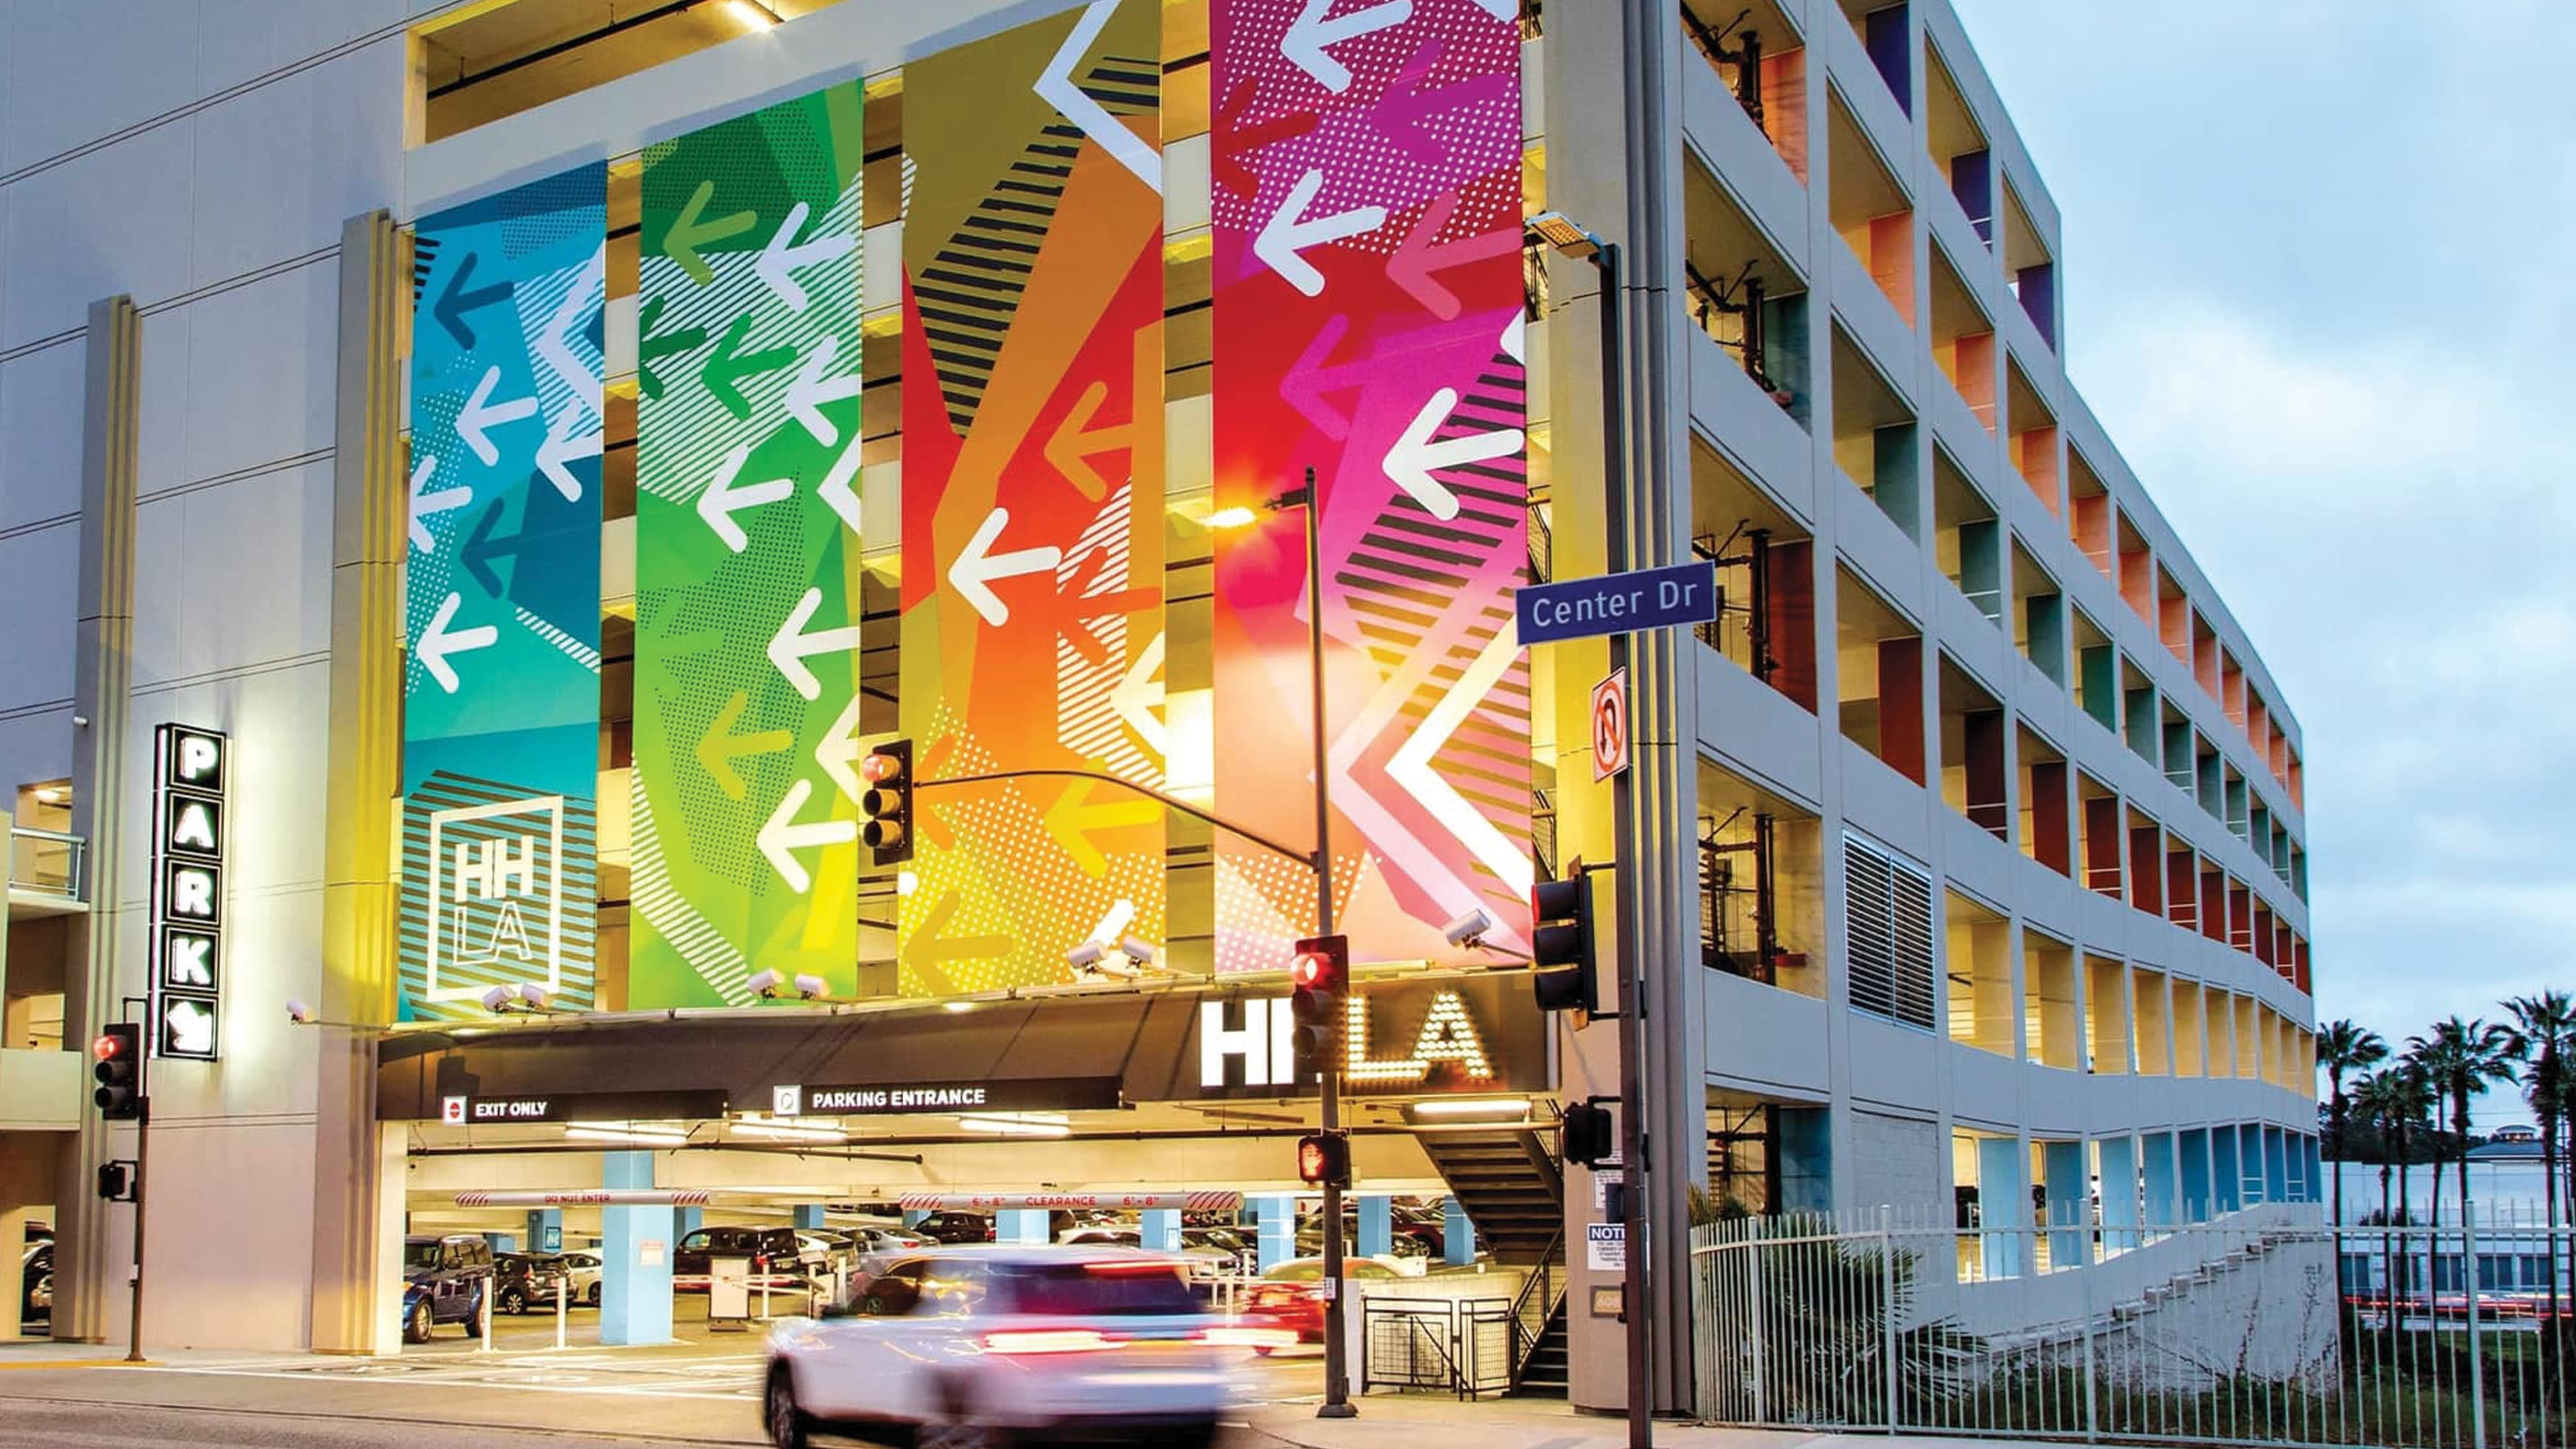 Specialty graphics and parking identity signage at HHLA parking structure